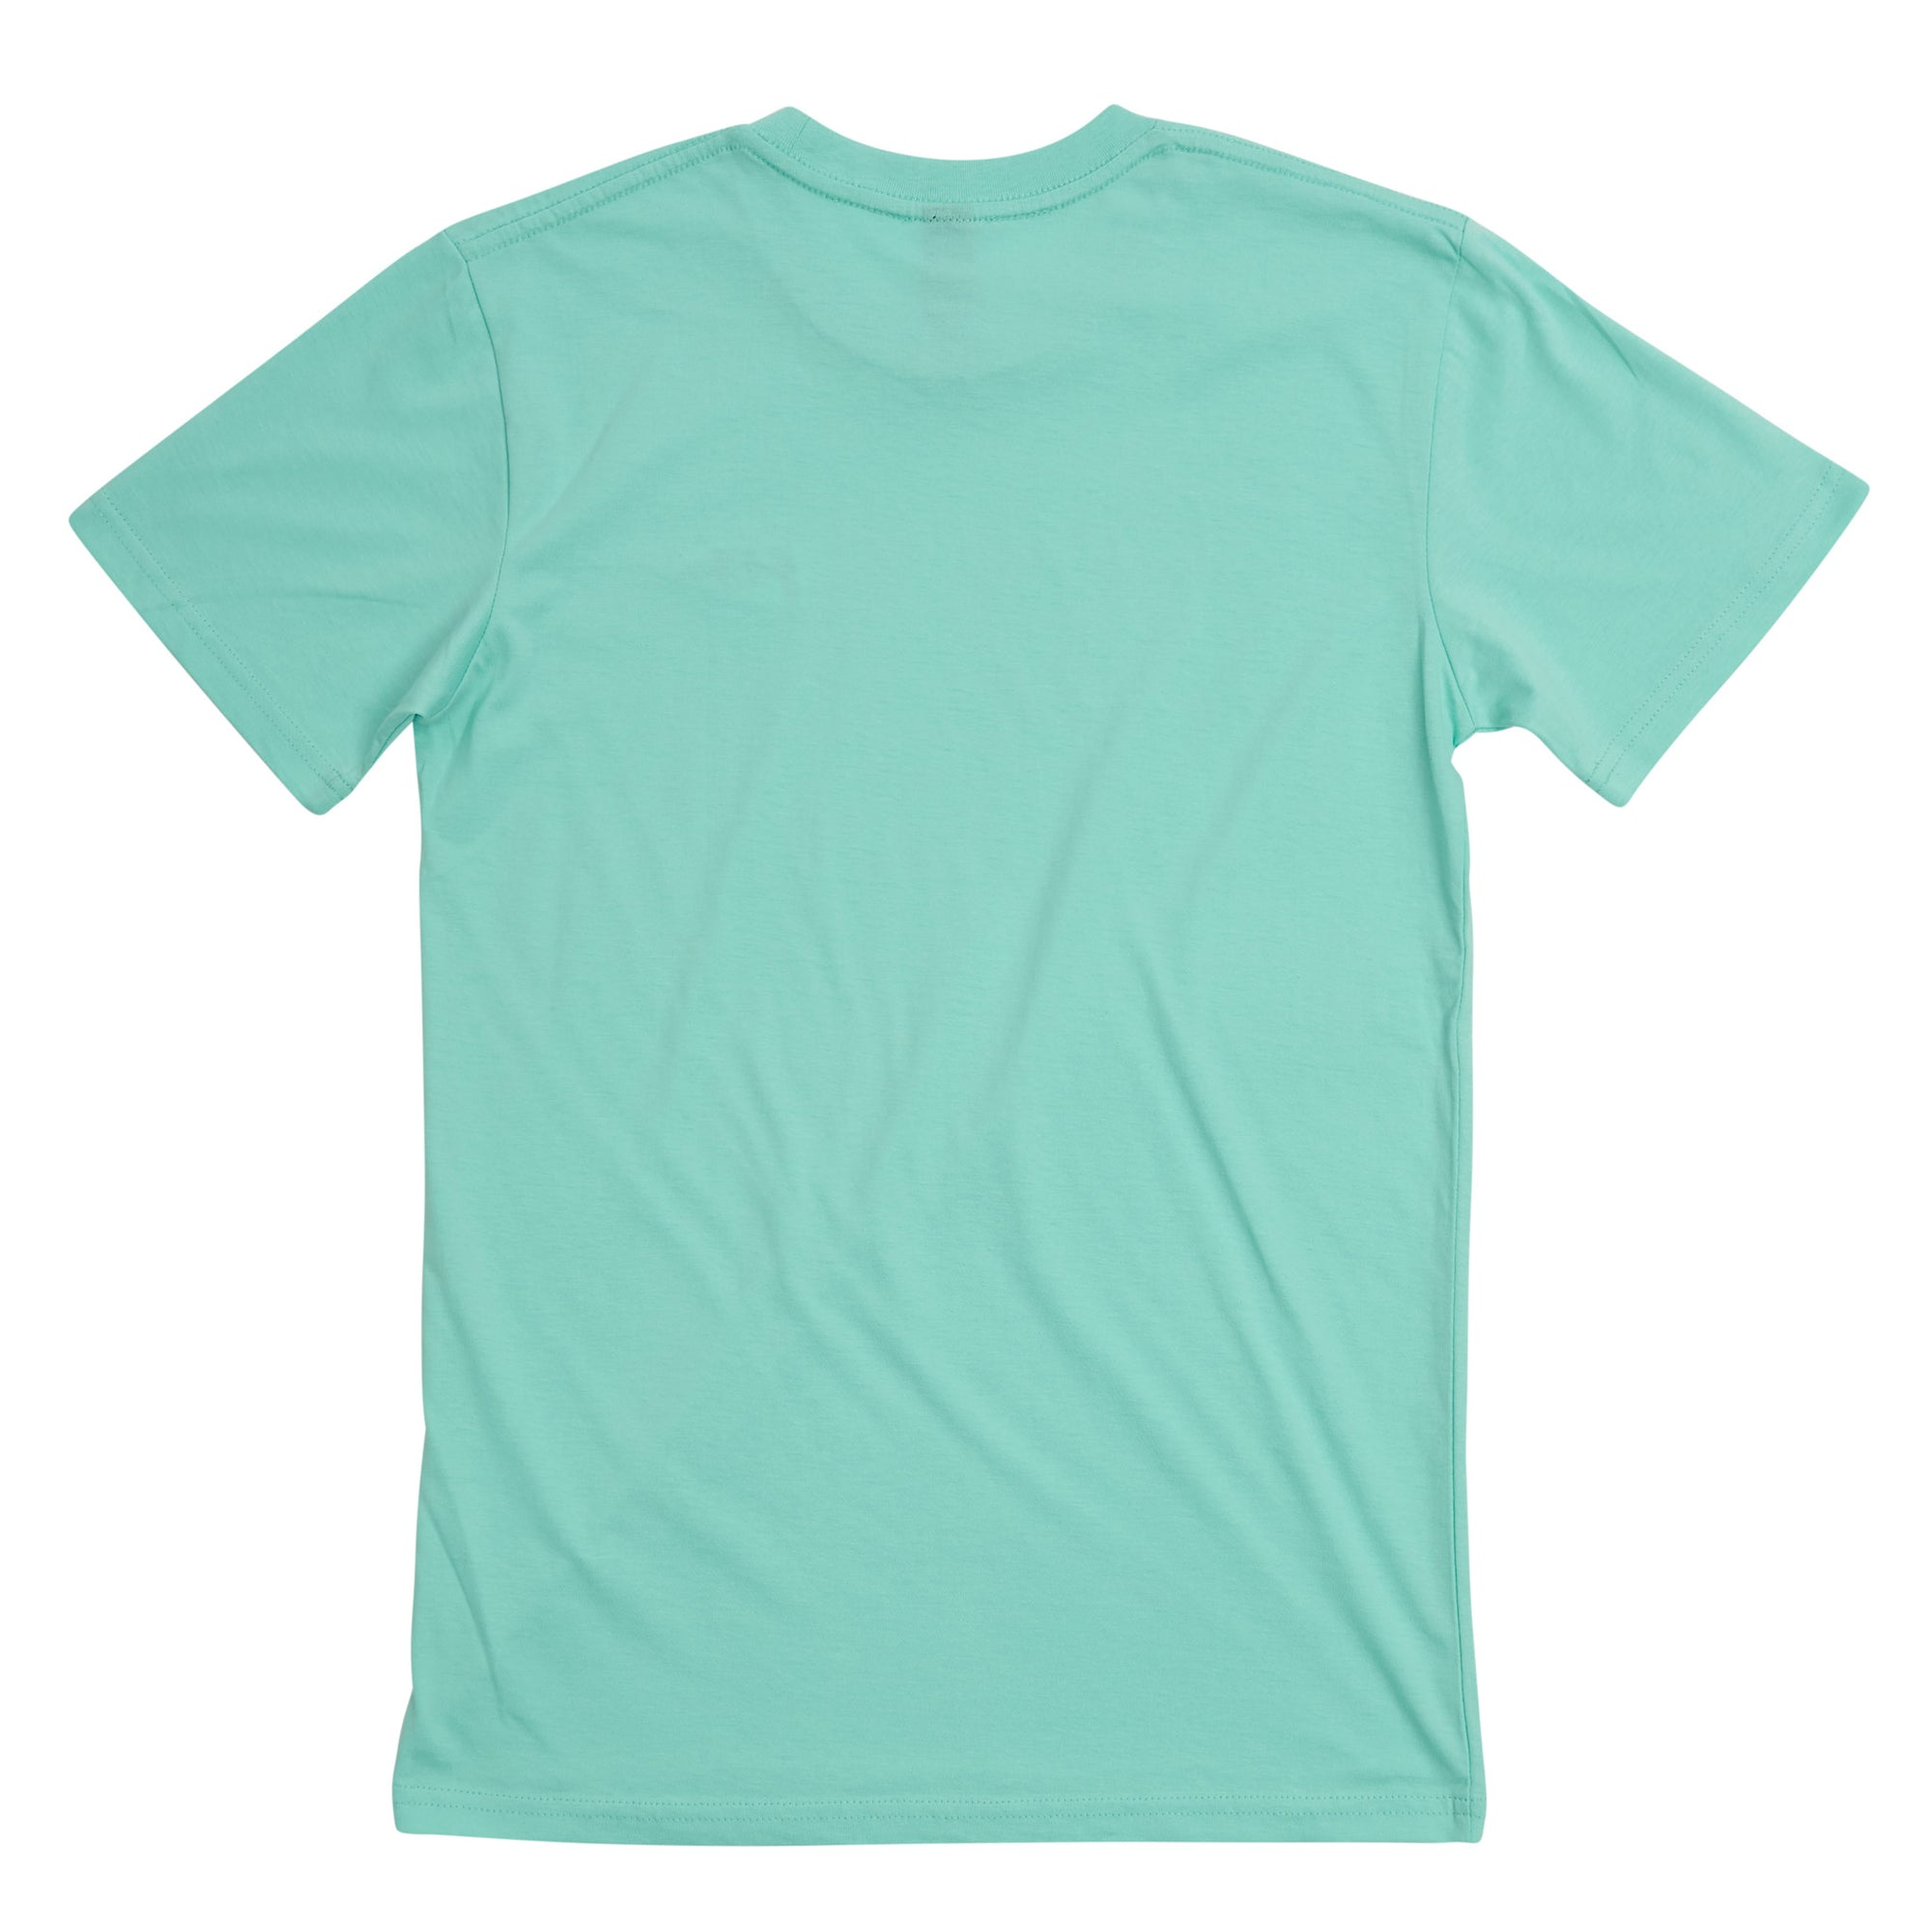 birds-of-condor-aqua-golf-sux-tee-shirt-front